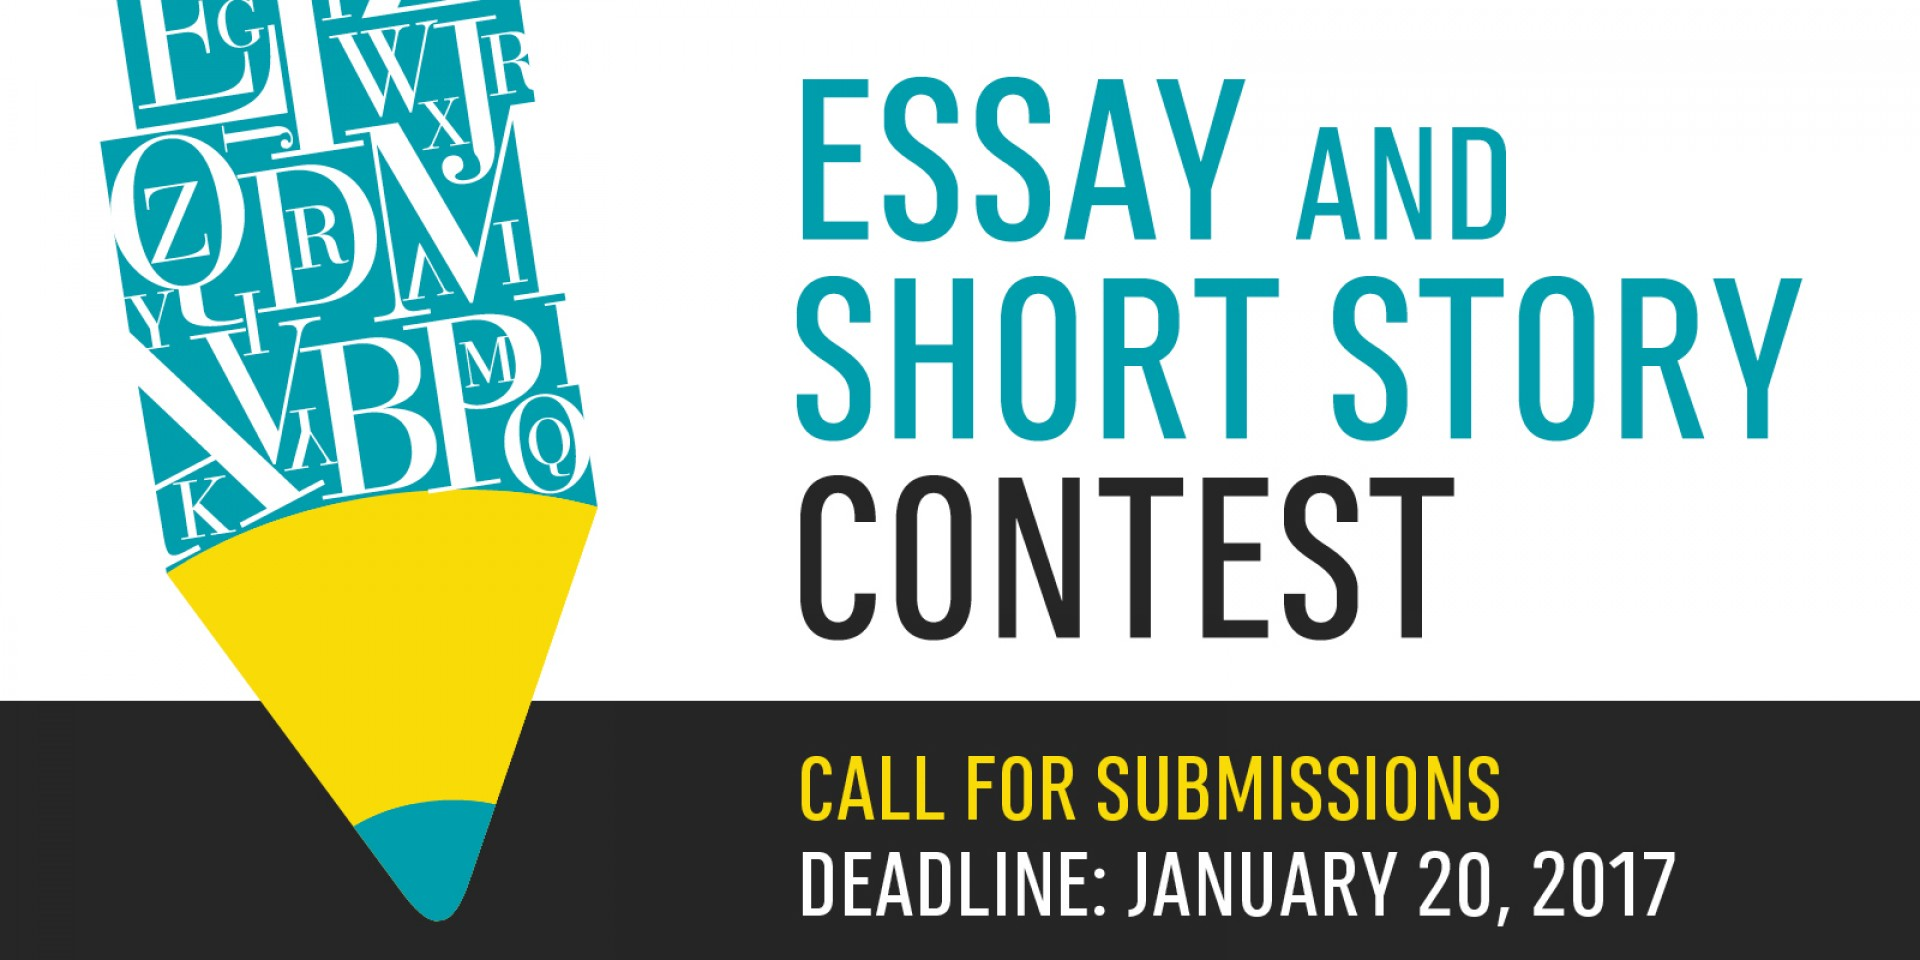 003 Essay Example Writers Writings Urban Partnership Using For College Students Essaycontest Bethmagwe International Competition Amazing Contest Writing High School Contests Seniors 2018 1920